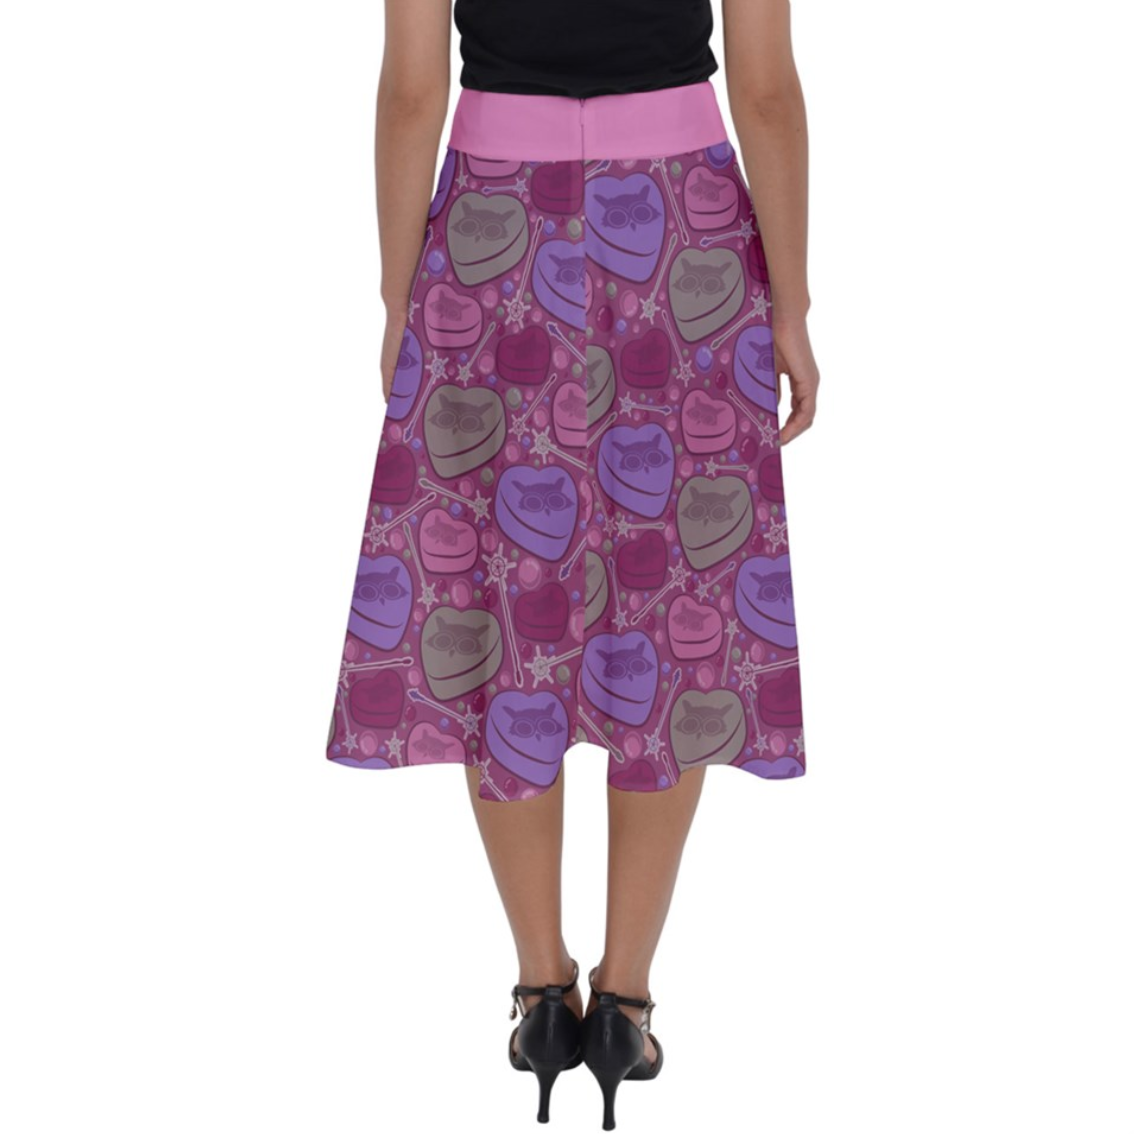 Charmed Perfect Length Midi Skirt (Pink Patterned)